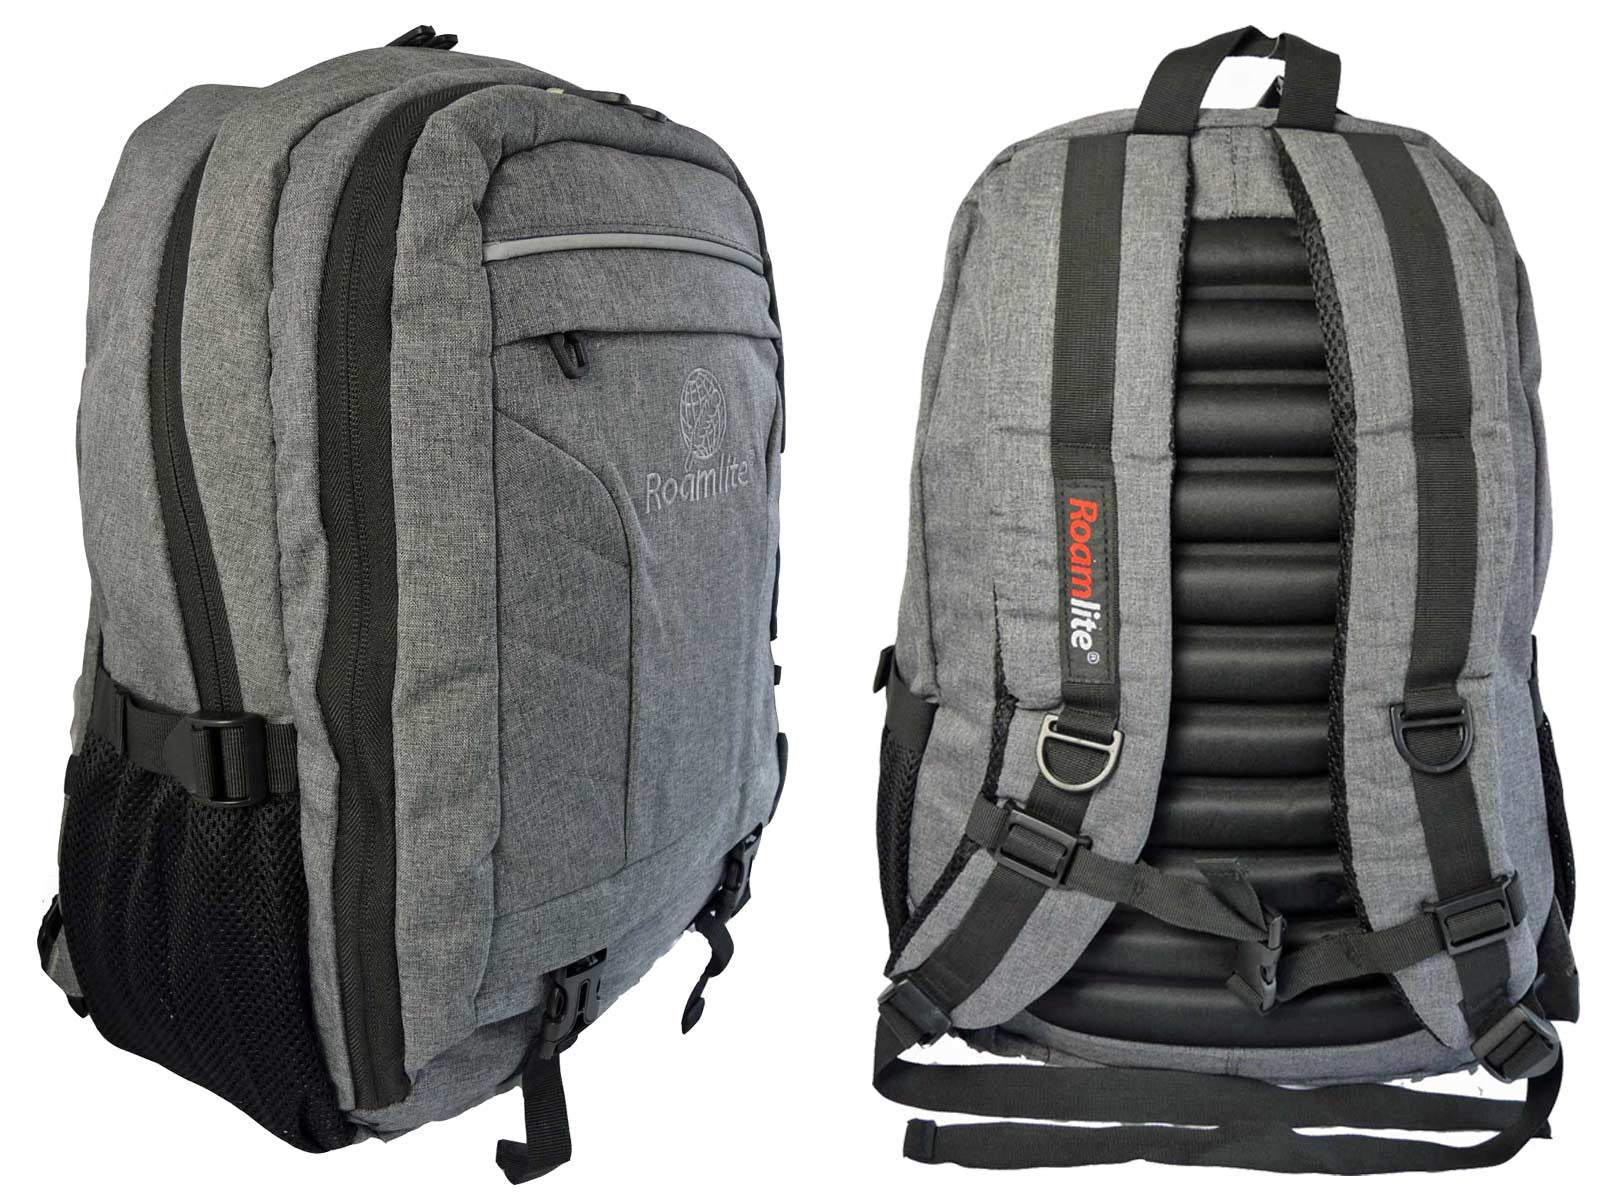 Laptop Macbook Backpack Rucksack Bag RL45GY Main View